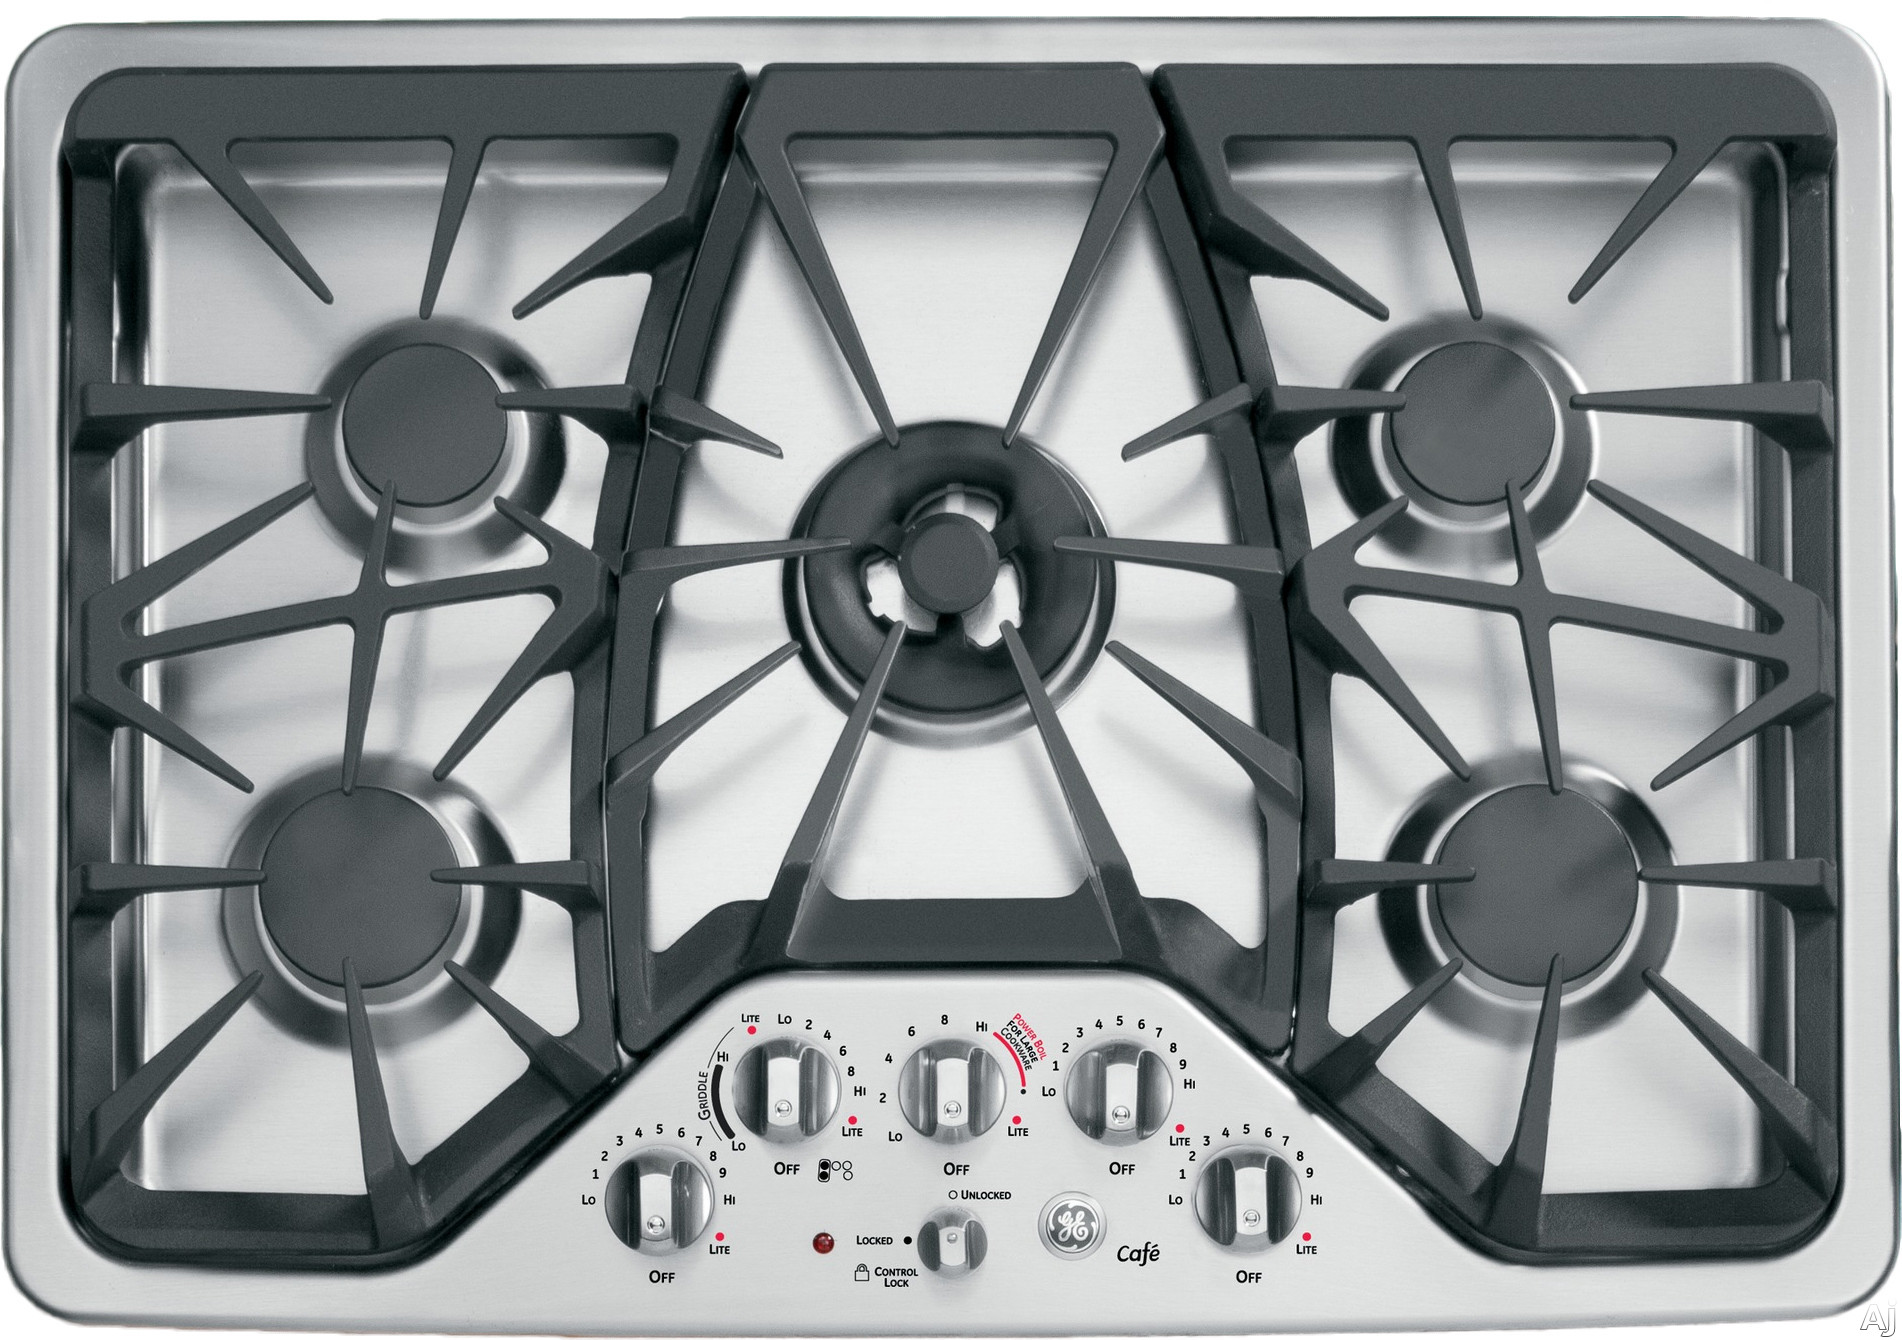 GE Cafe Series CGP350SETSS 30 Inch Gas Cooktop with 5 Sealed Burners, 20,000 BTU Tri-Ring Burner, Precise Simmer Burner, Heavy Cast Grates, Child Lock, Griddle Accessory, GE Fits! Guarantee and ADA Compliant